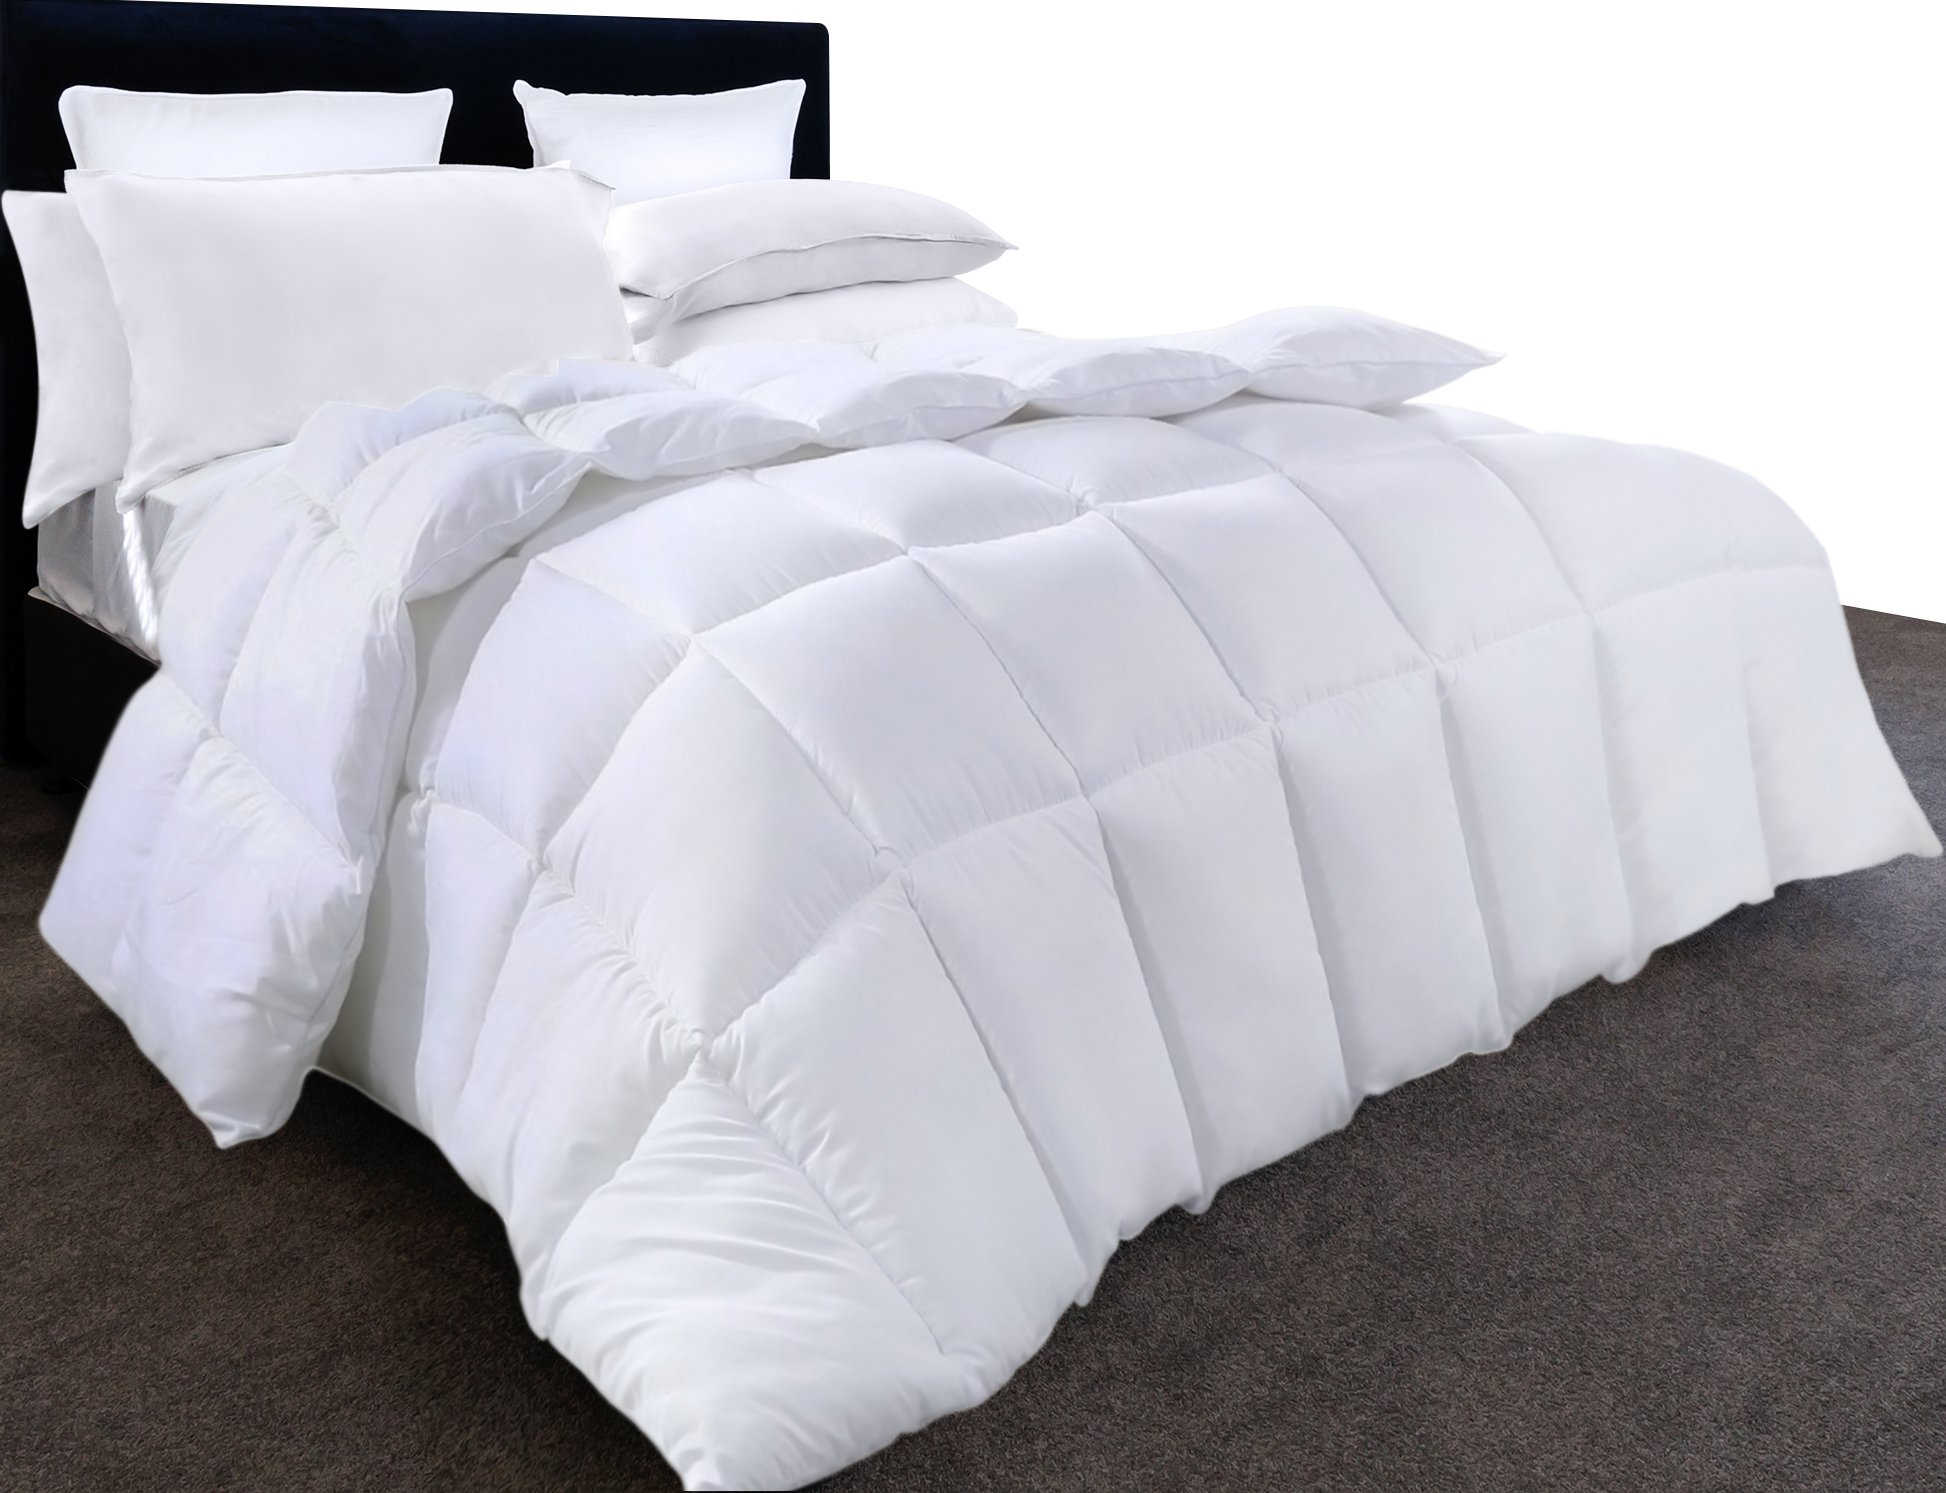 Utopia Bedding Ultra Plush Hypoallergenic, Siliconized fiberfill, Box Stitched Alternative Comforter, Duvet Insert, Protects Against Dust Mites and Allergens (King 90 by 102 inch) by Utopia Bedding